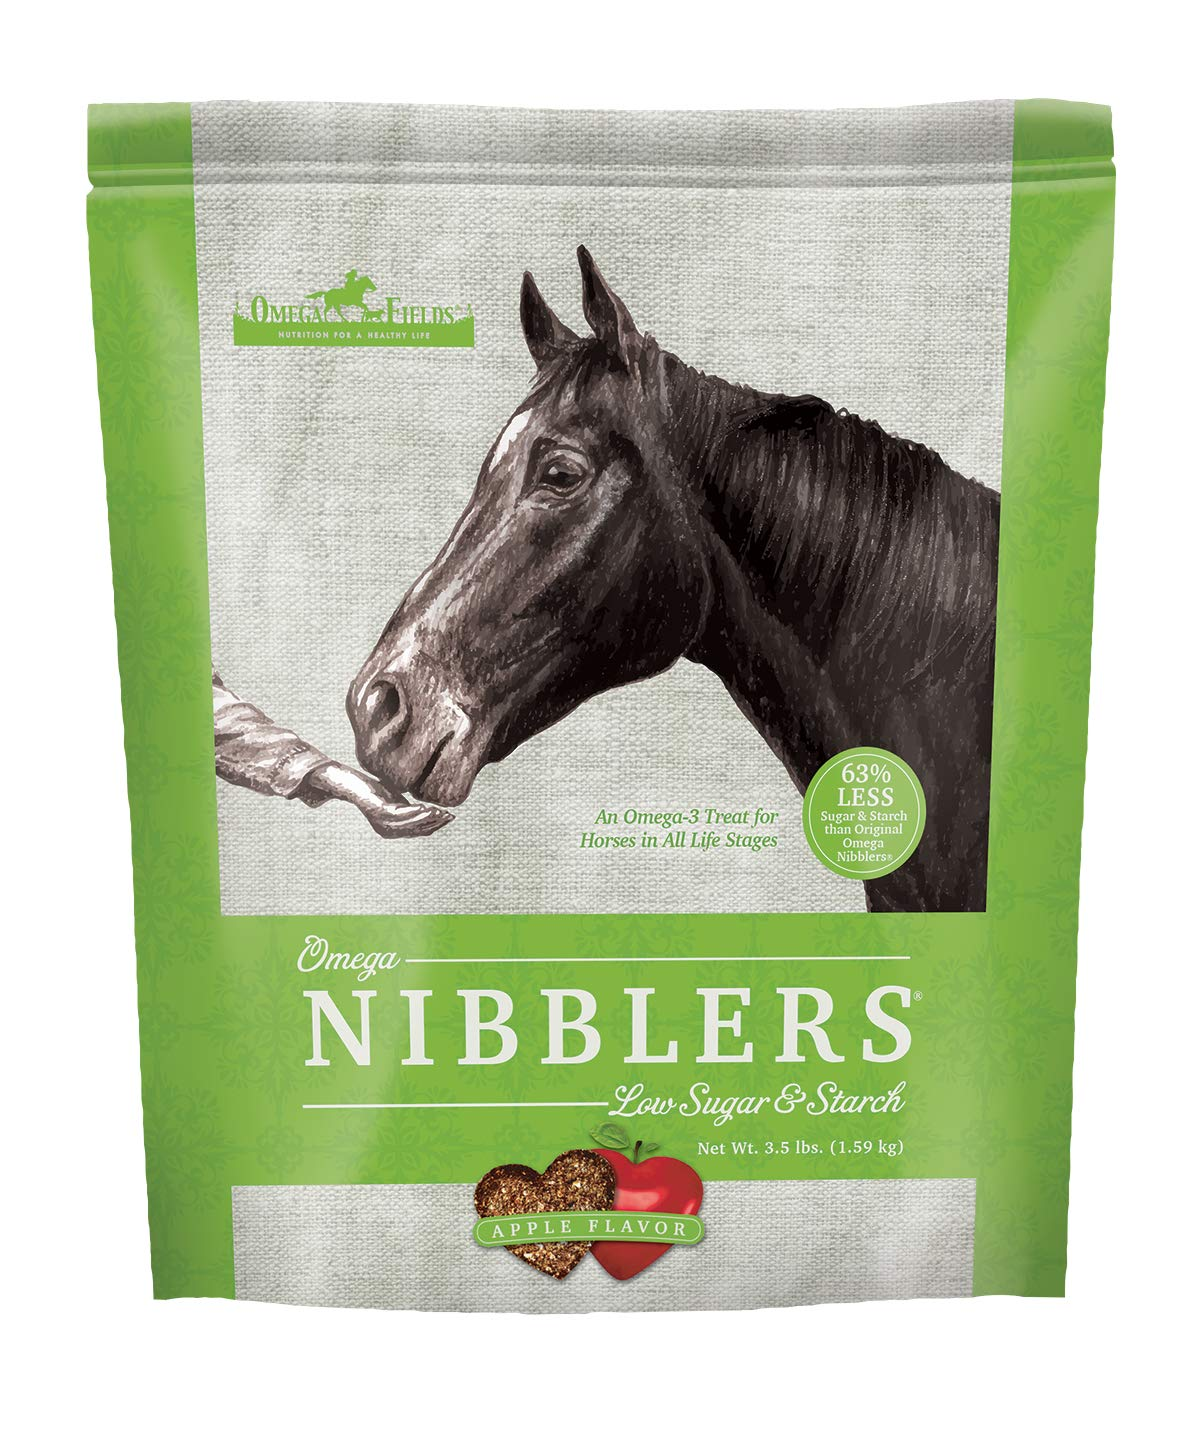 Omega Nibblers Low Sugar & Starch, 3.5 lb by Omega